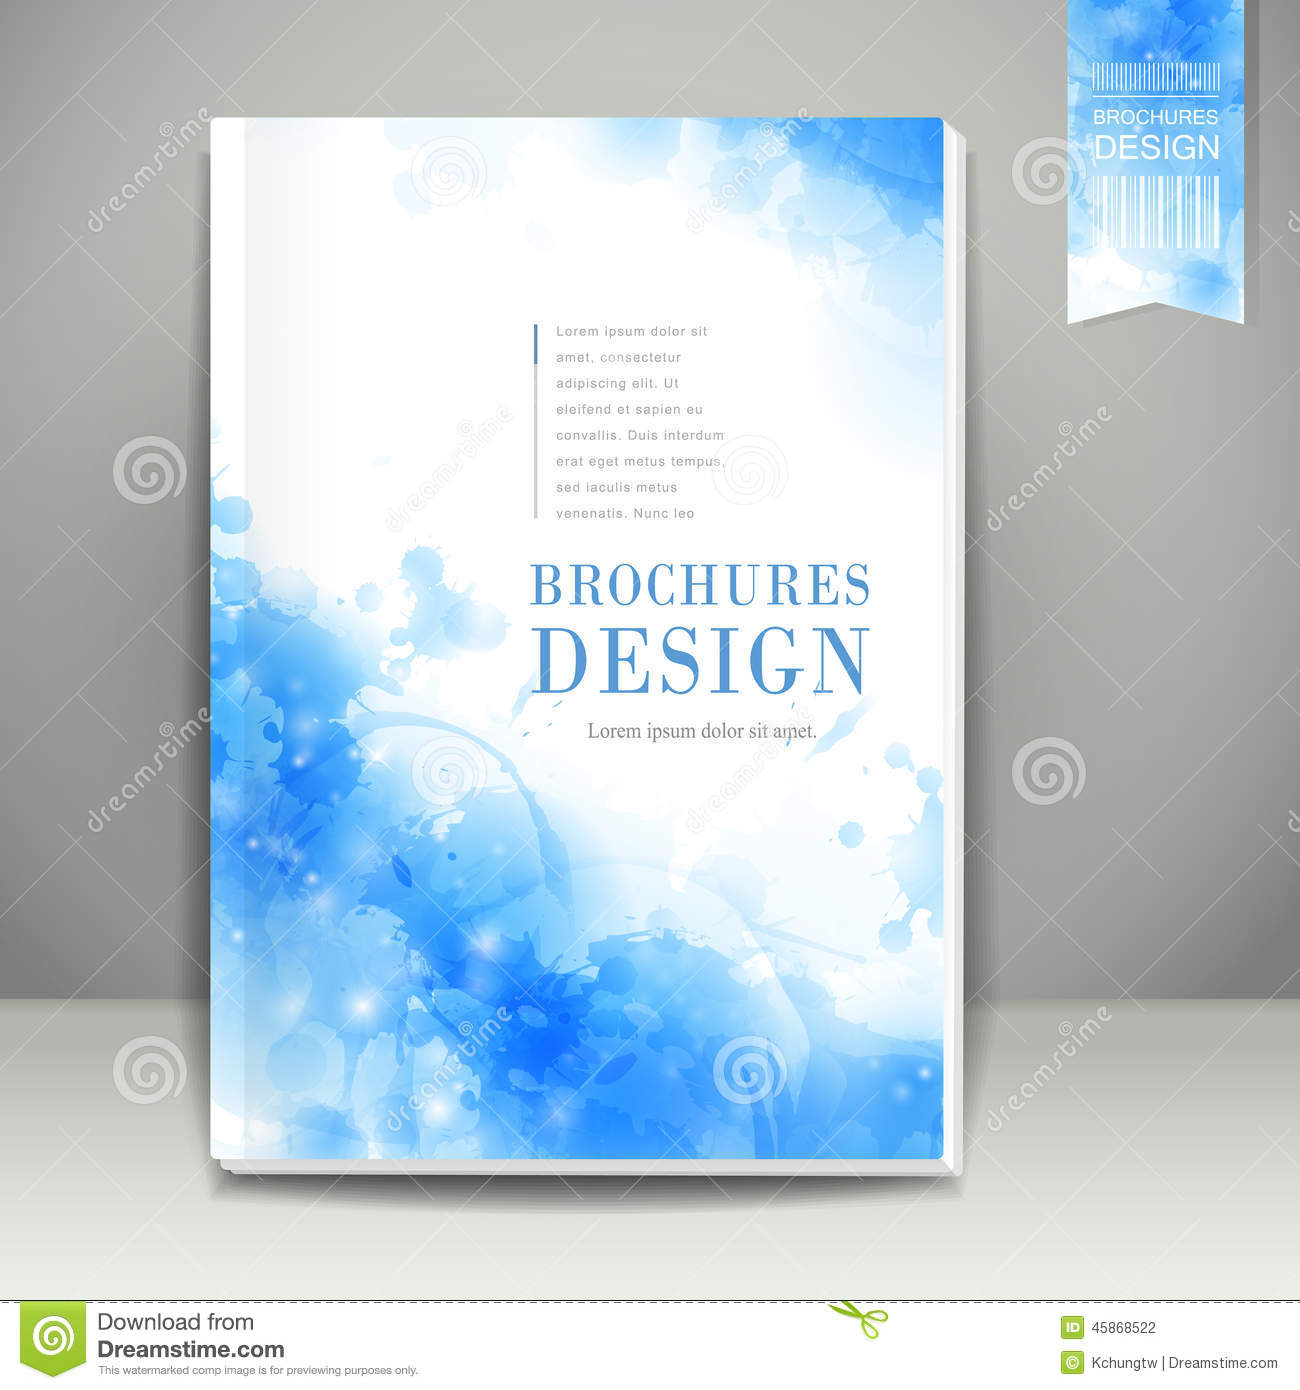 Background Design For Book Cover : Watercolor style background design for book cover stock